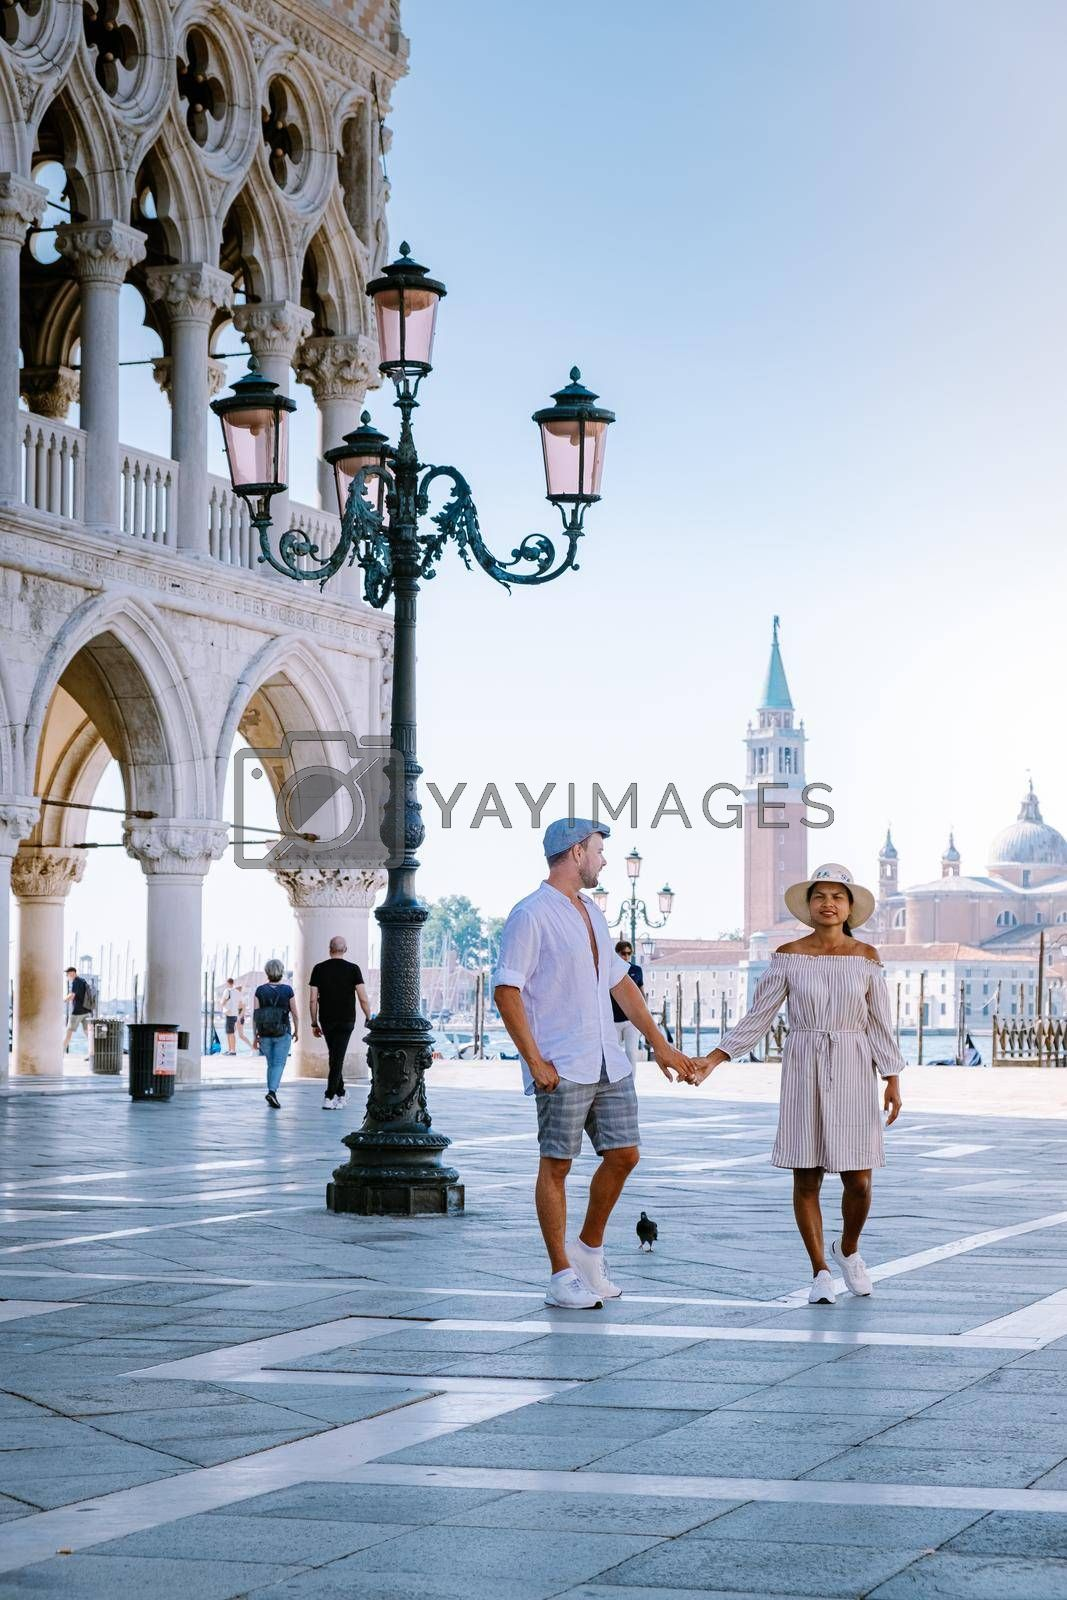 couple on a city trip in Venice, view of piazza San Marco, Doge's Palace Palazzo Ducale in Venice, Italy. Architecture and landmark of Venice. Sunrise cityscape of Venice Italy